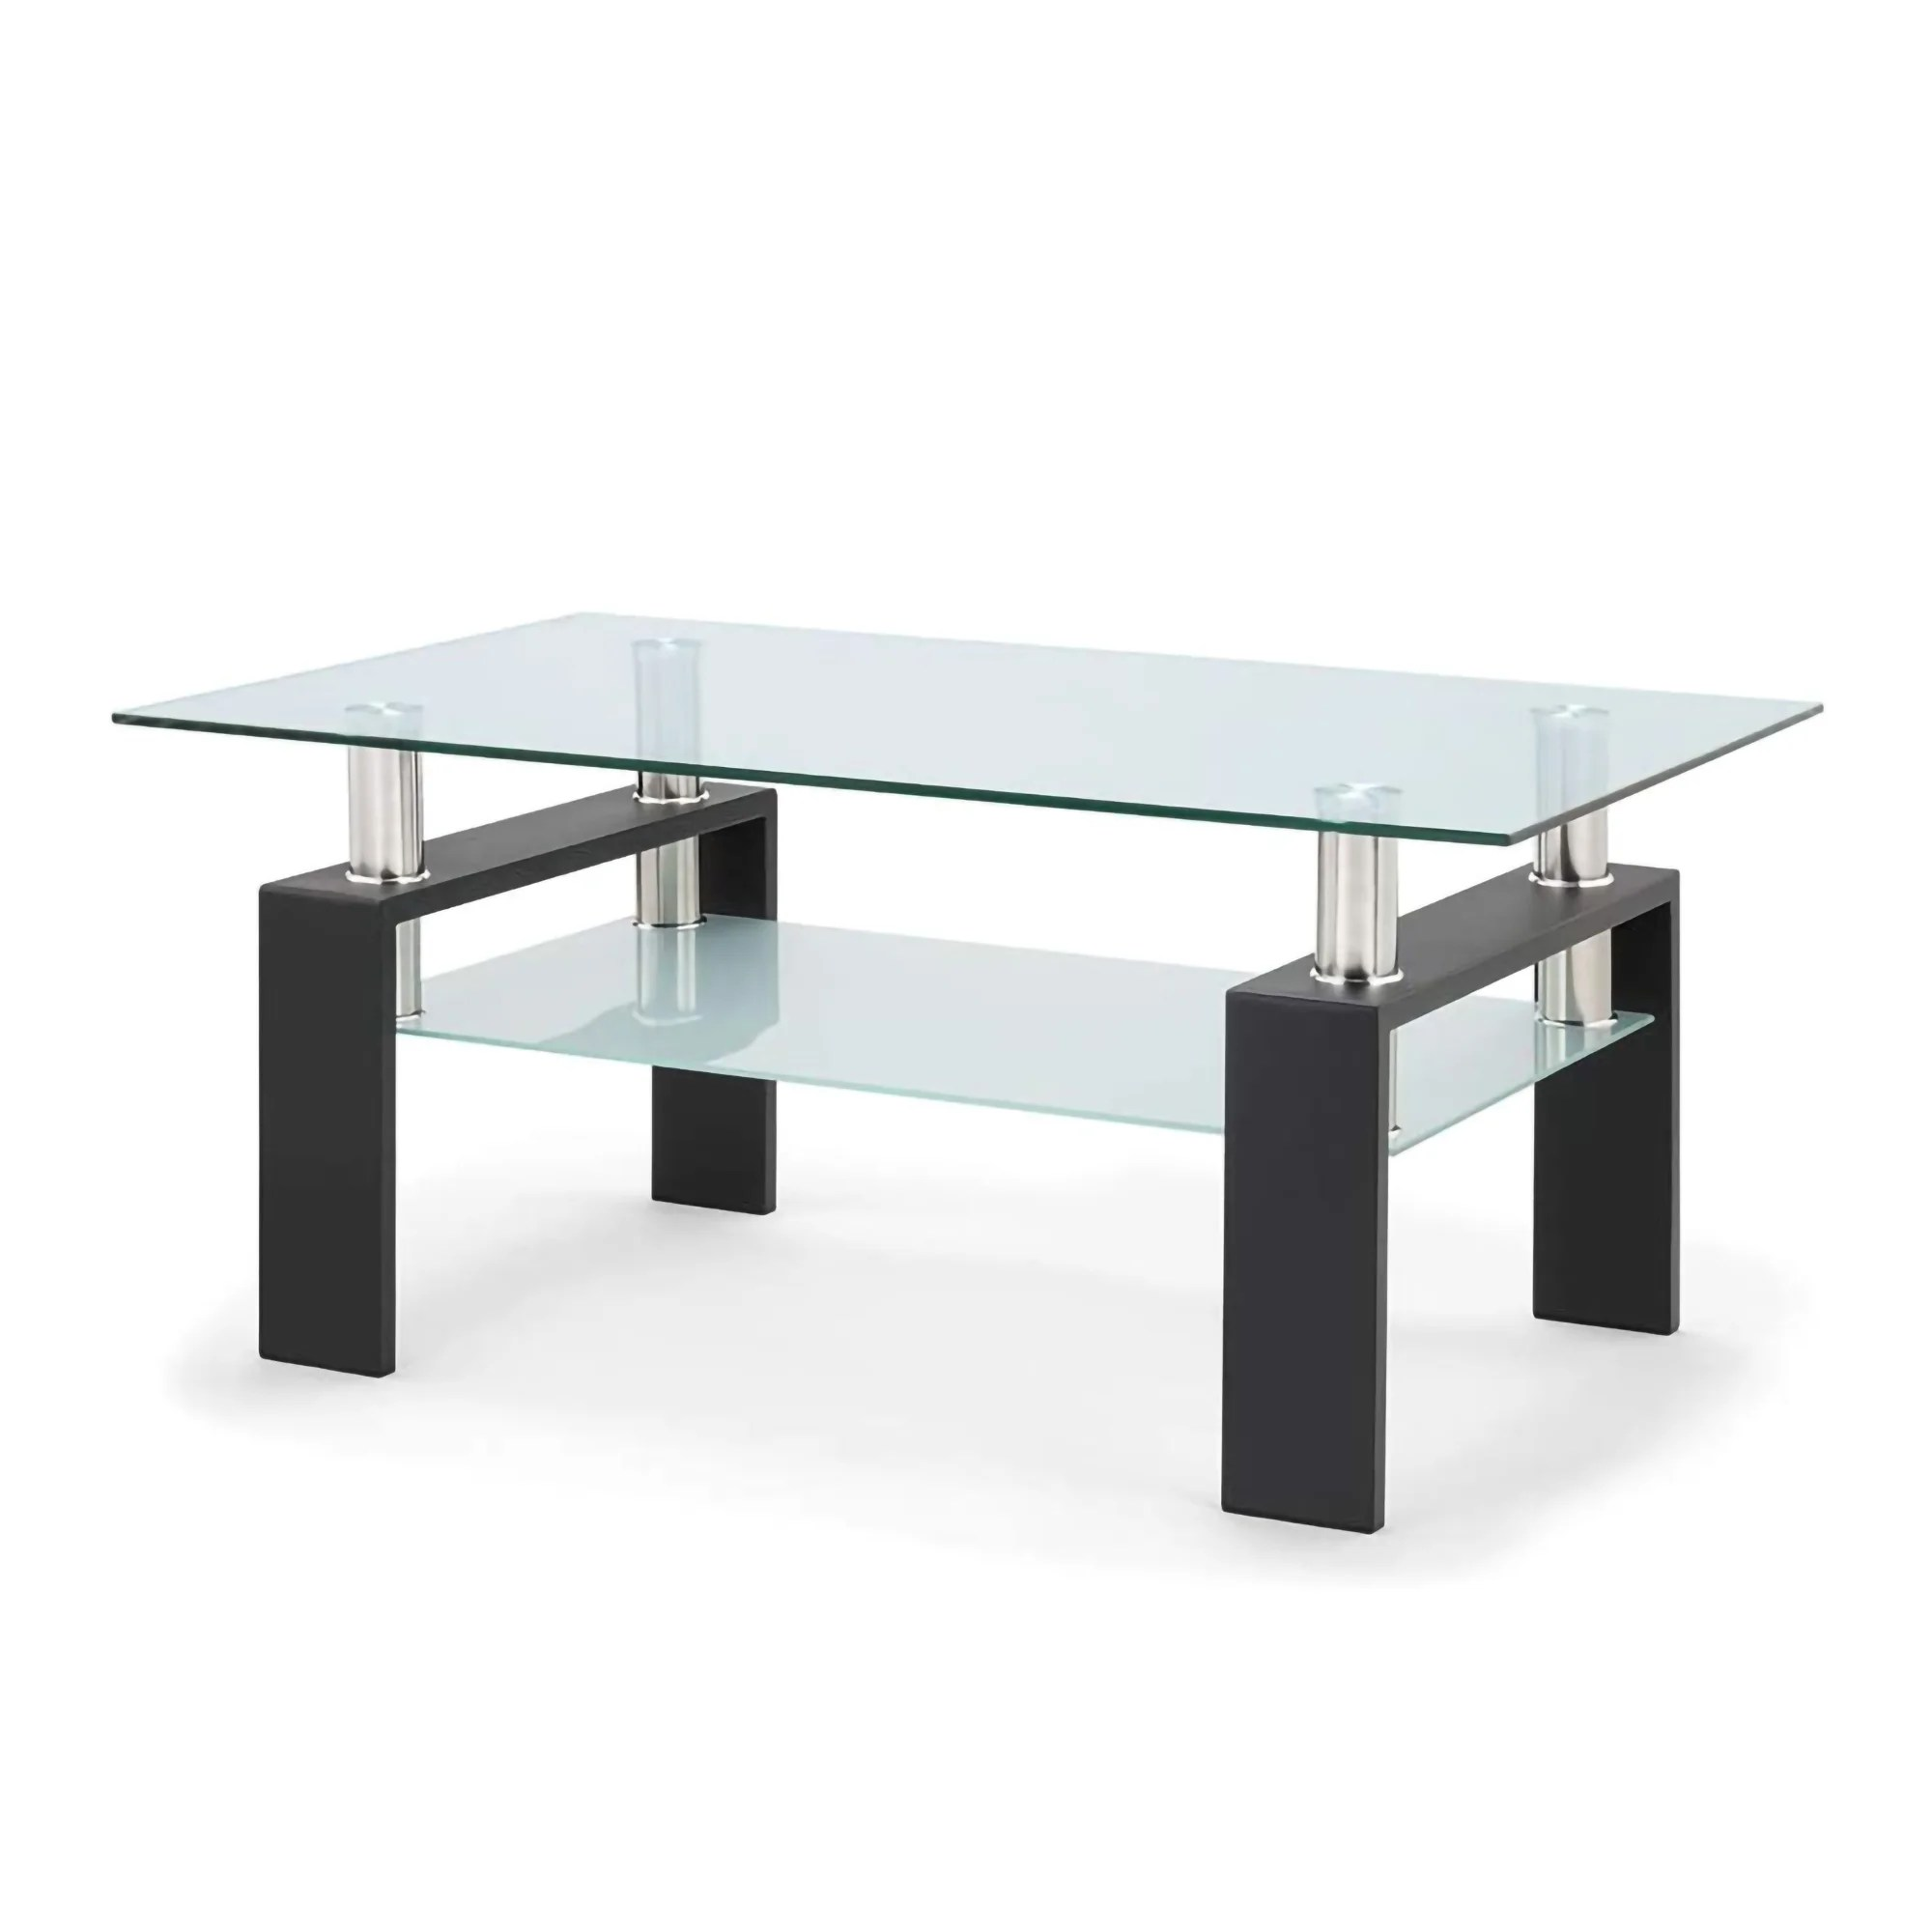 modern style 2 tier tempered glass coffee table with storage shelf and sturdy metal legs side table for living room office